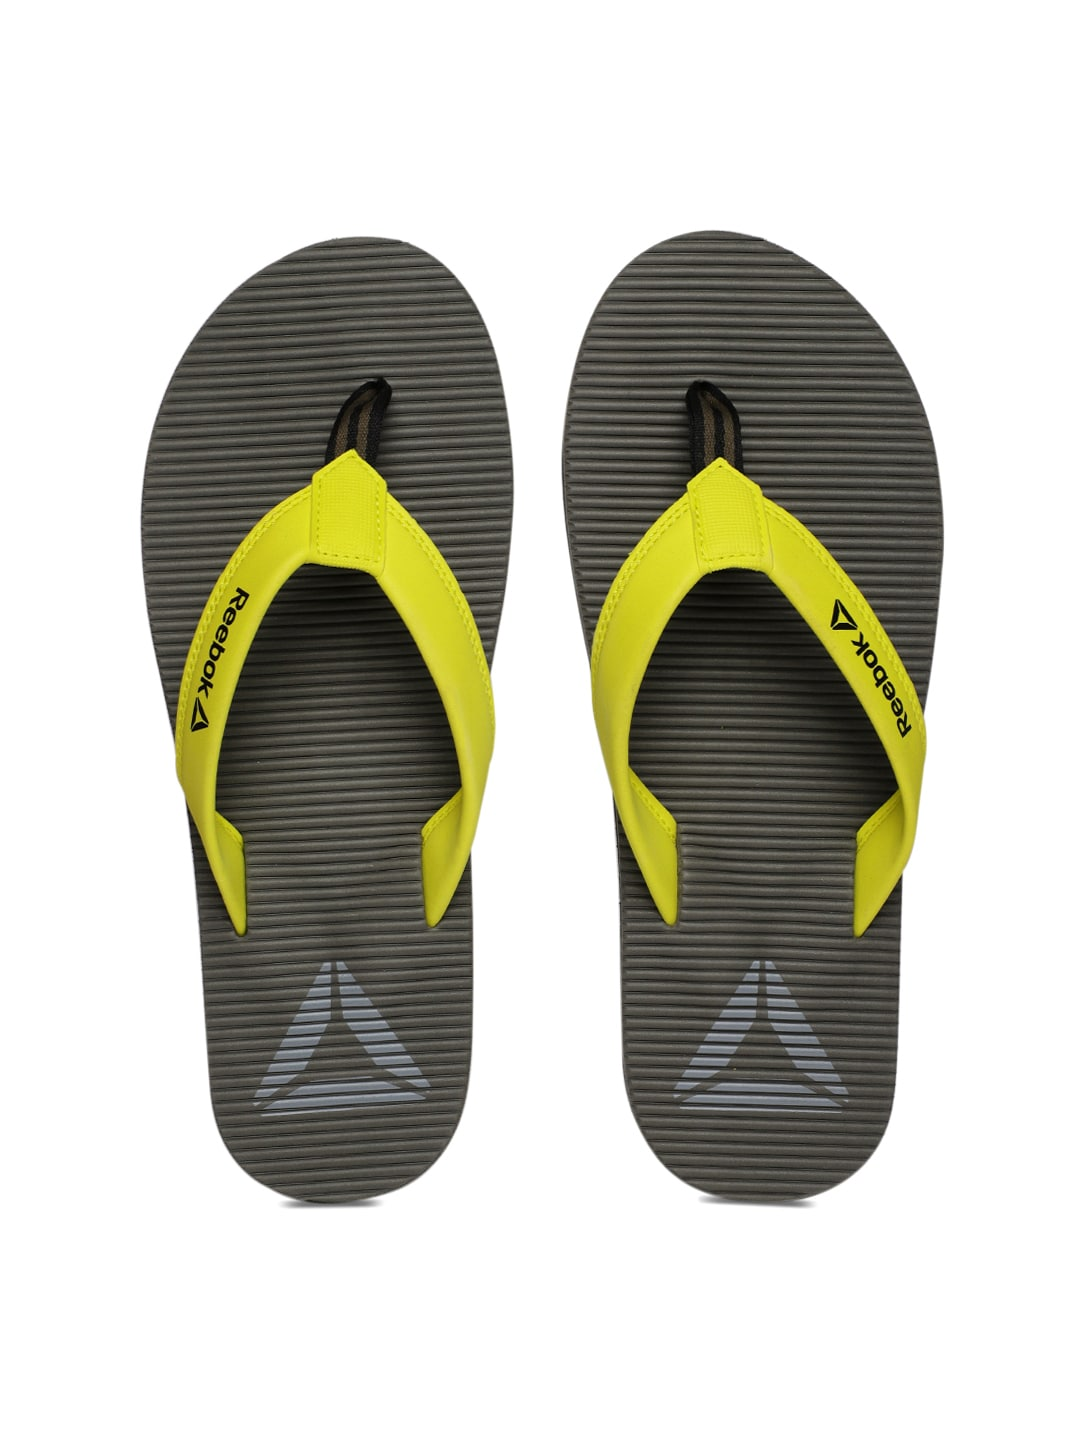 f1db3cfc1 Men s Reebok Flip Flops - Buy Reebok Flip Flops for Men Online in India